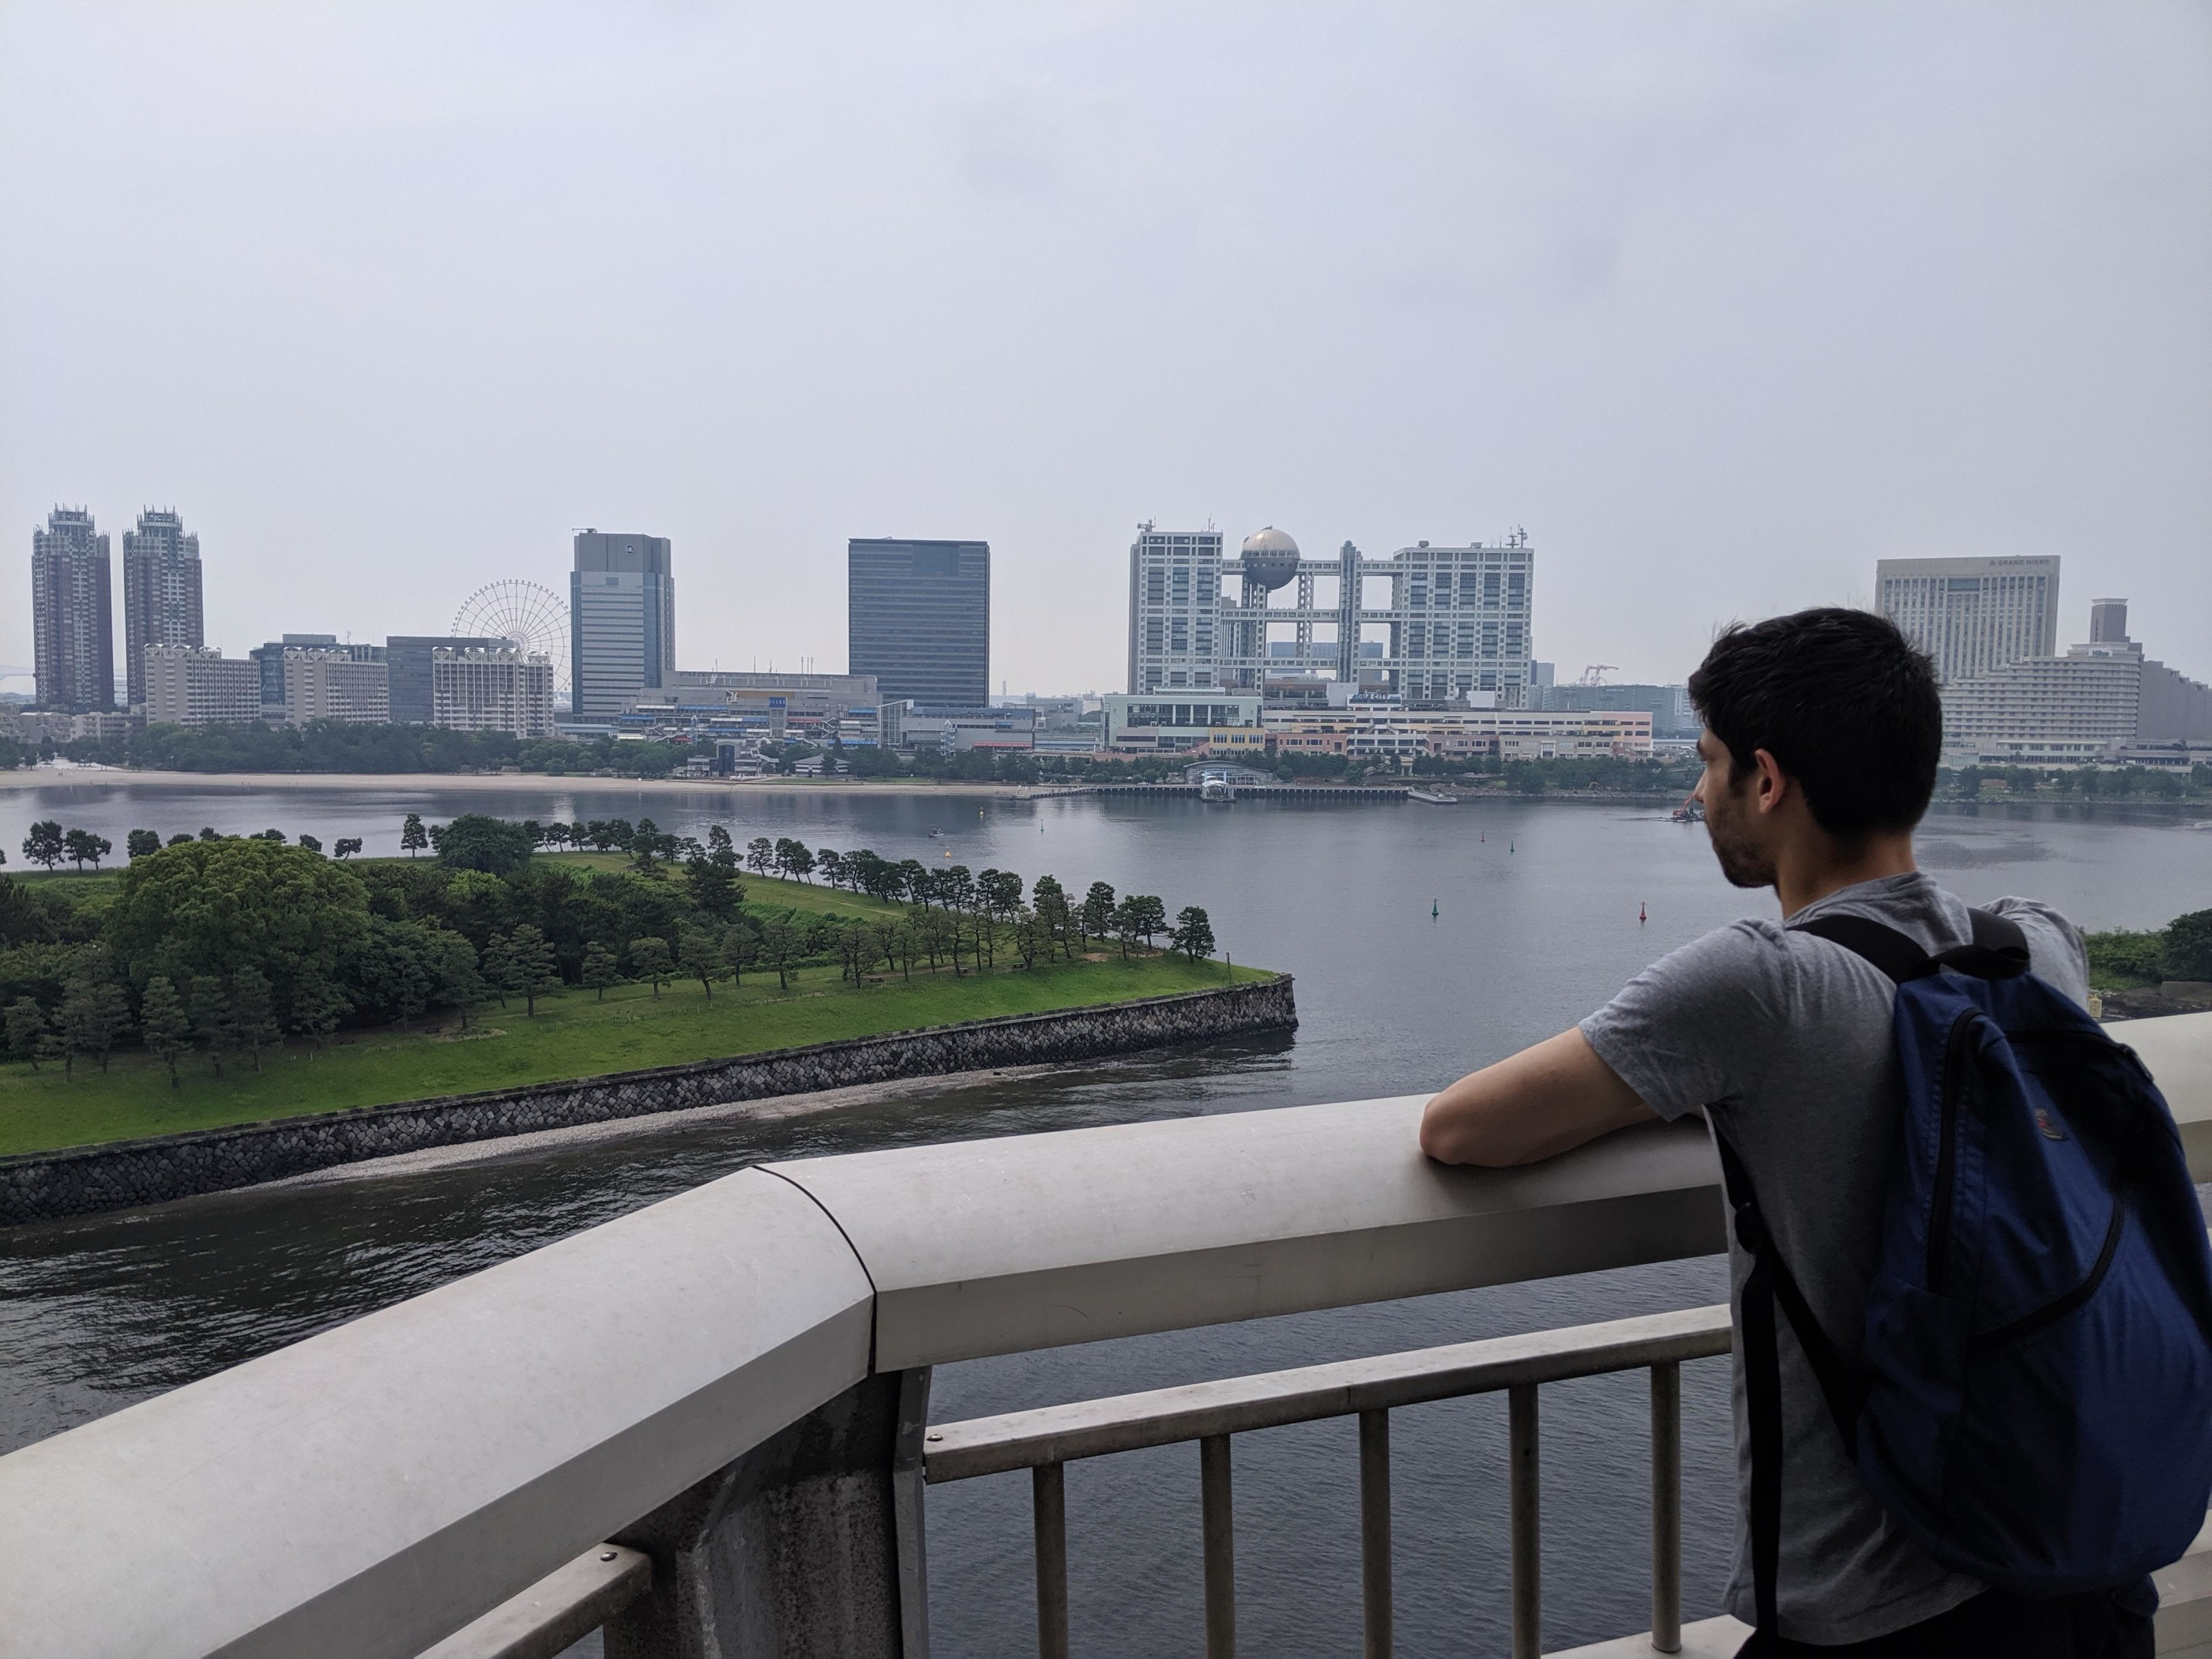 The view from the Rainbow Bridge. In the bottom left you can see a small island connected to Odaiba we explored.